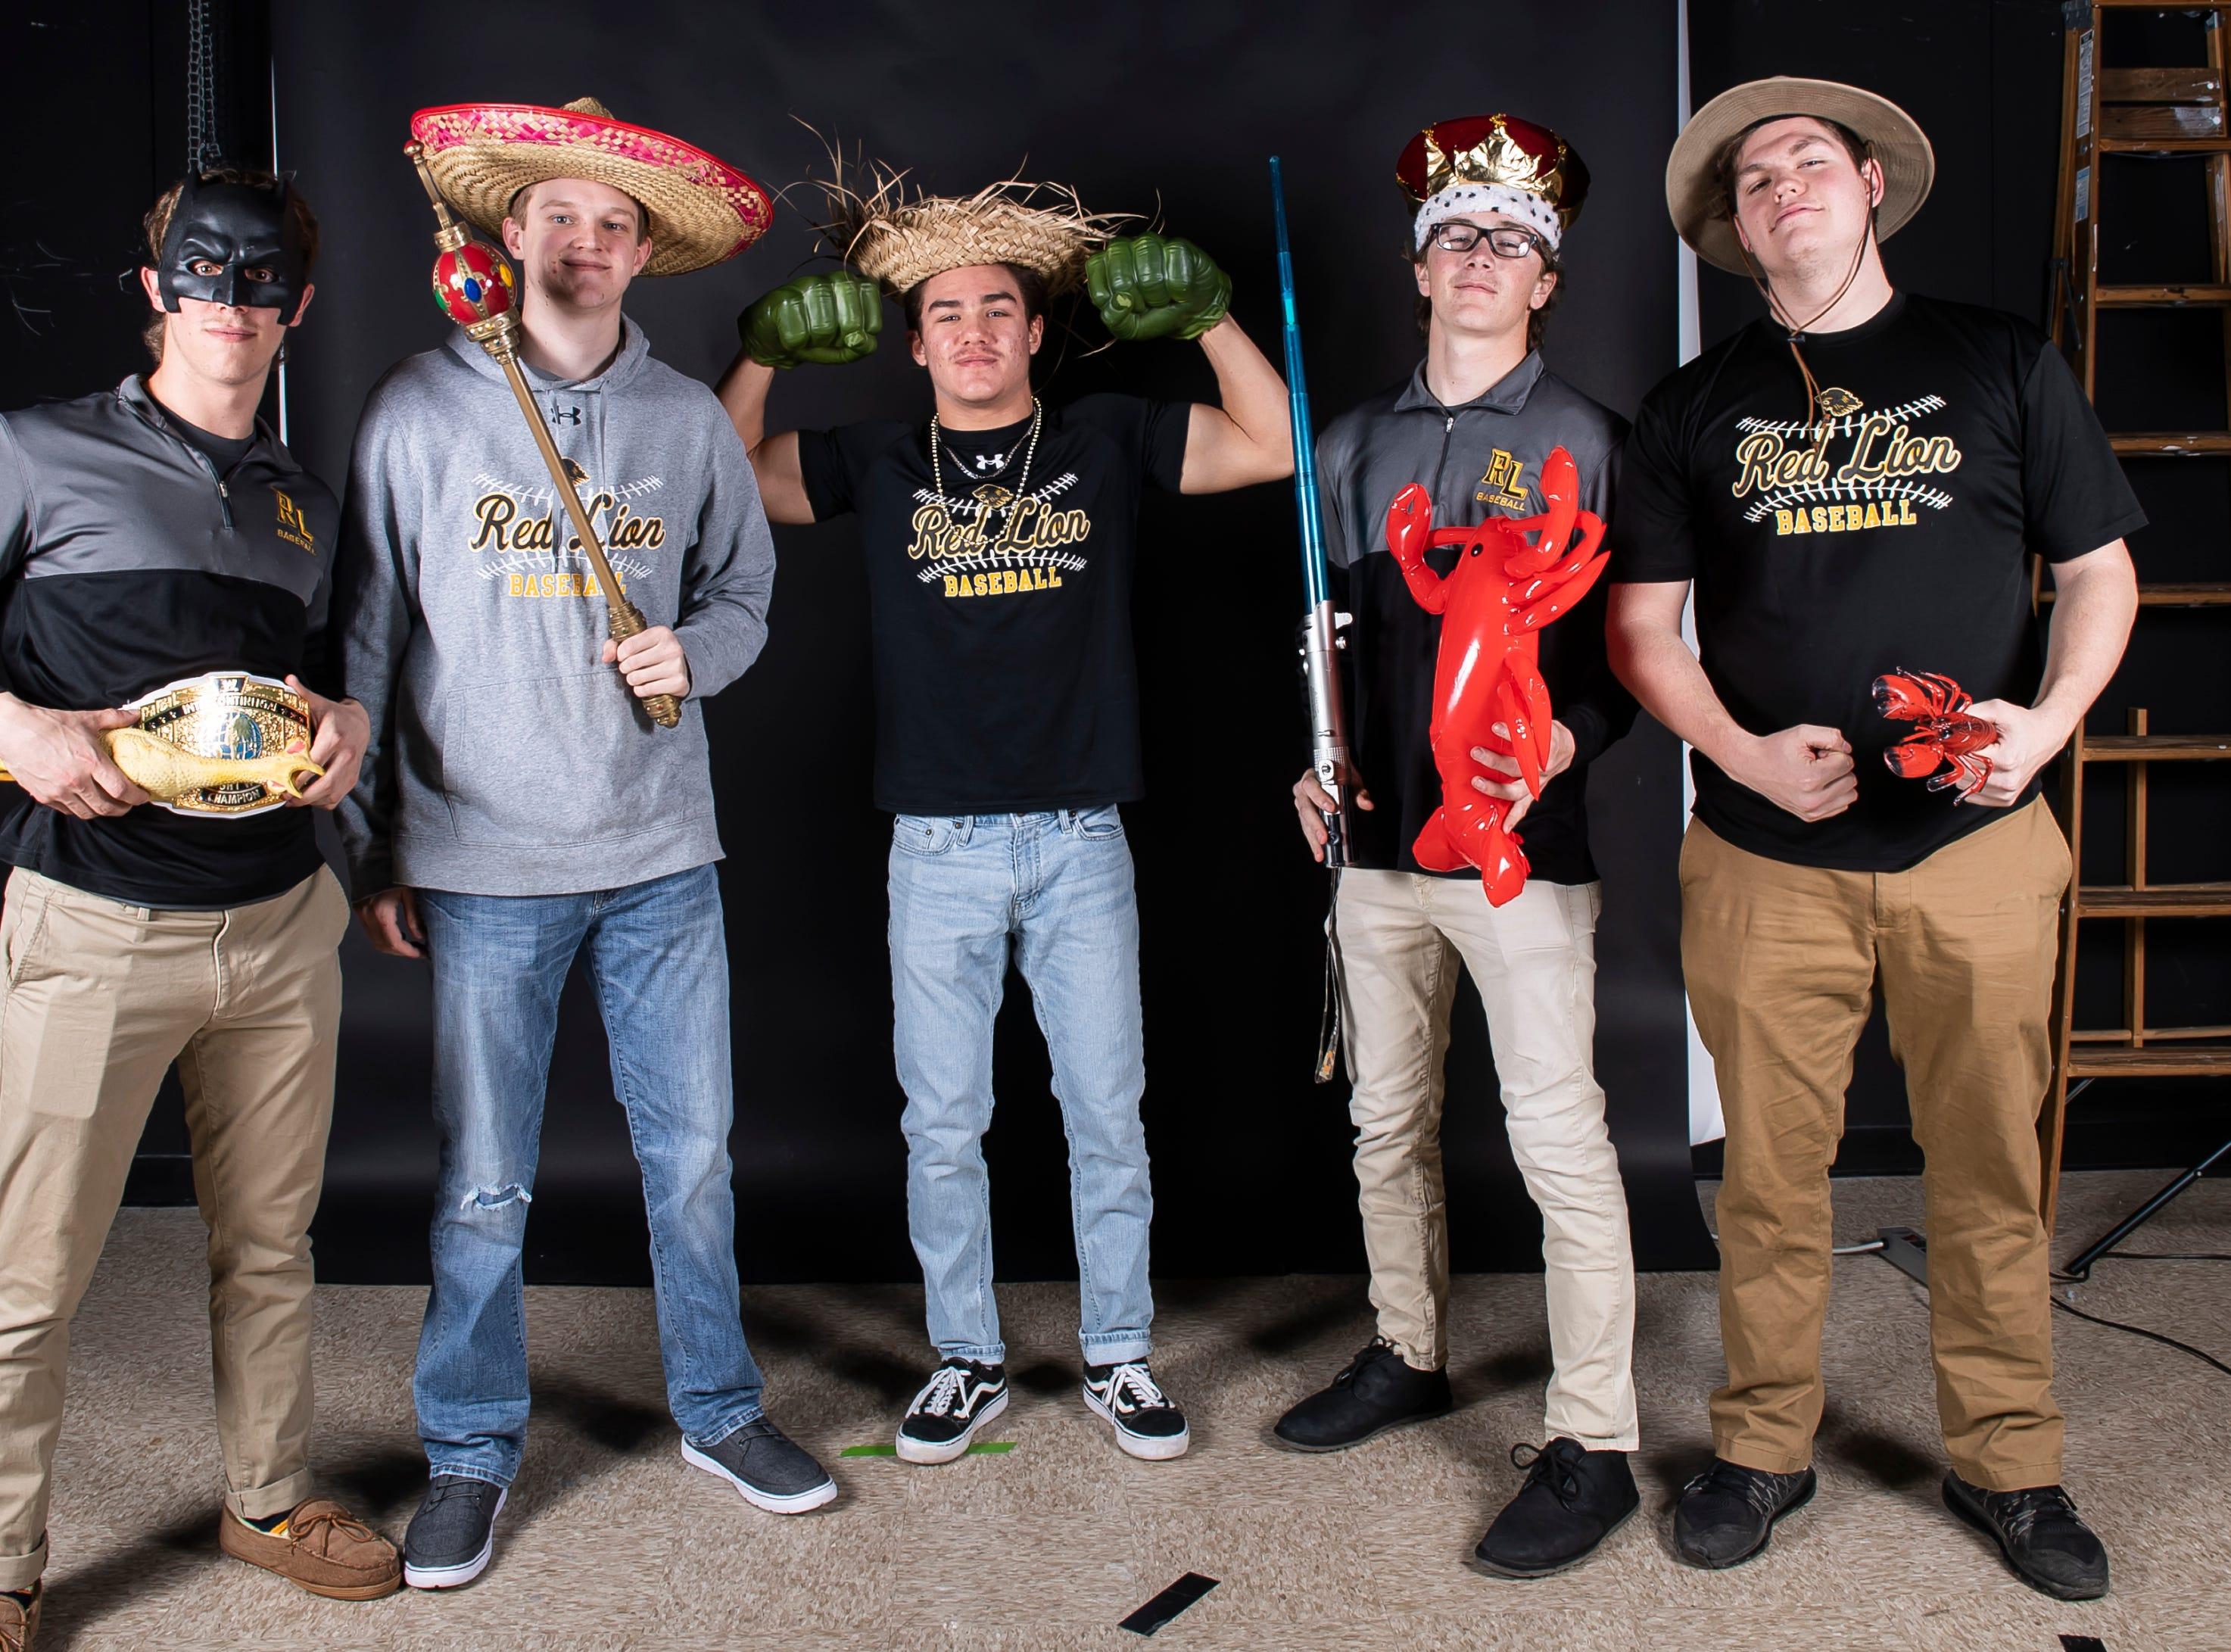 (From left) Red Lion baseball players strike a pose in the GameTimePA photo booth during spring sports media day in York Sunday, March 10, 2019.